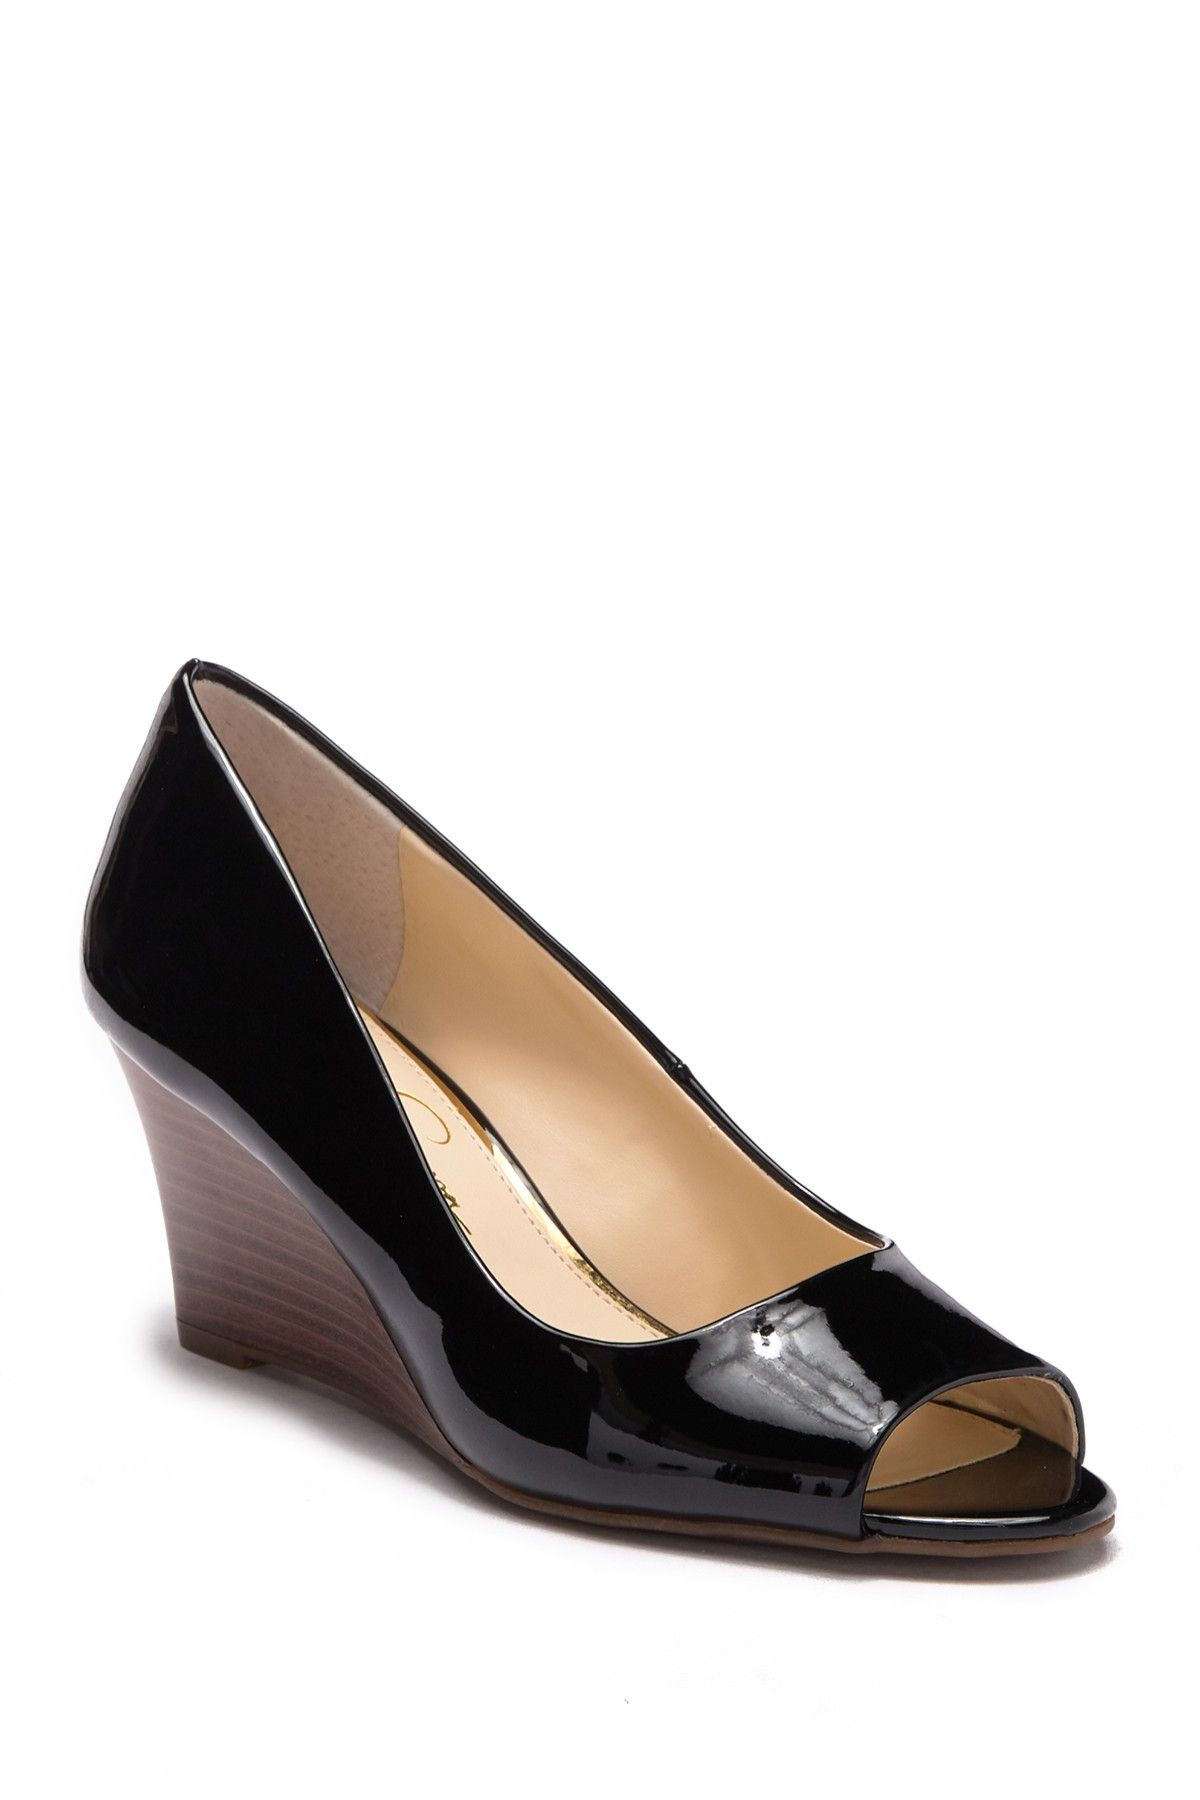 faa9546be Jessica SimpsonSiennly Wedge Pump